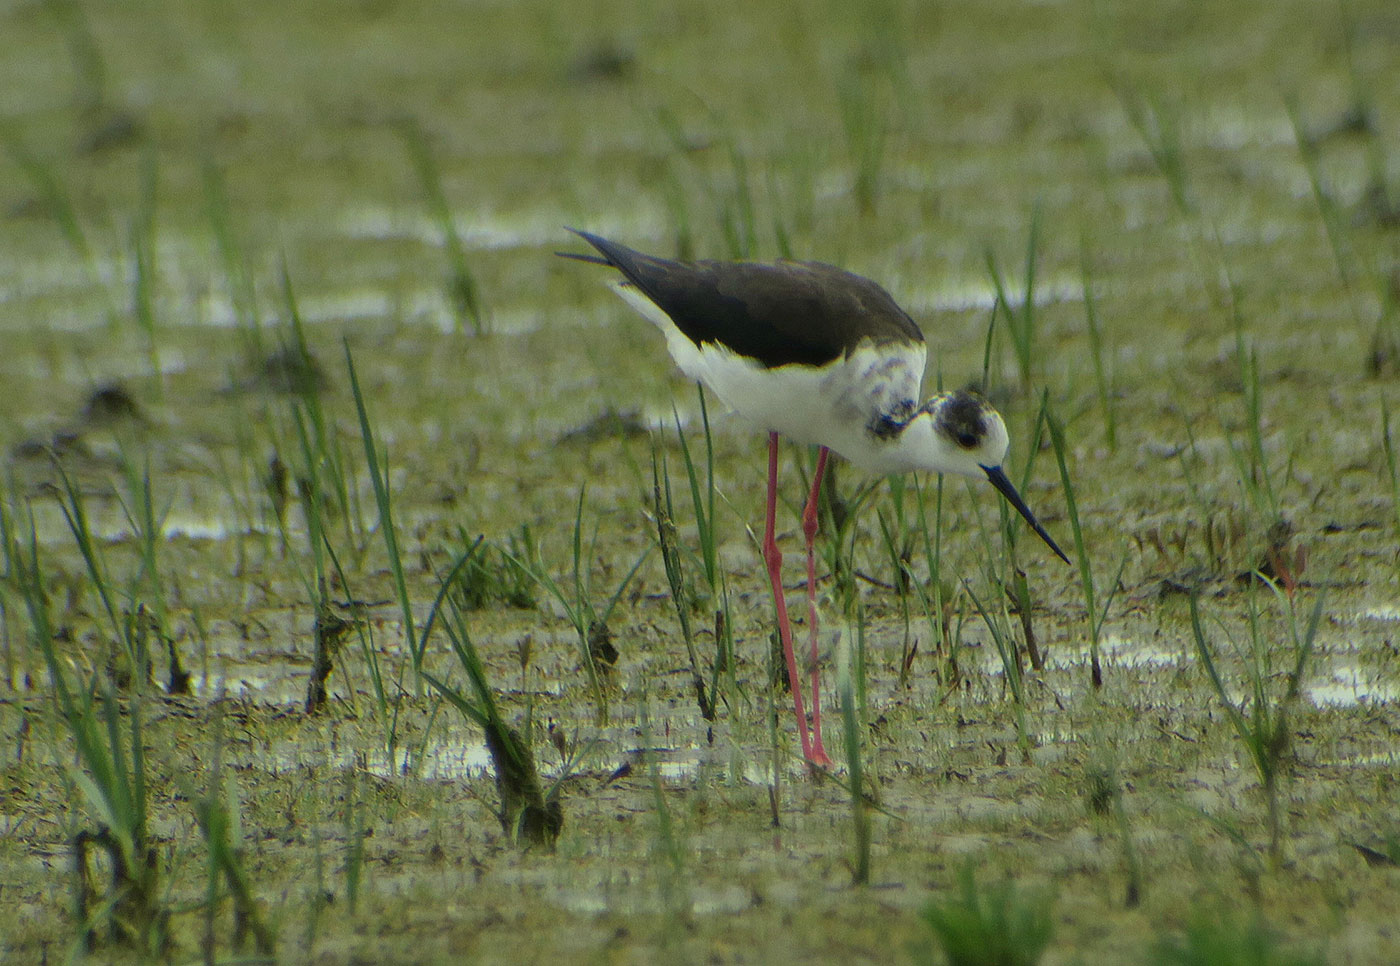 04_stelzenlaeufer_black-winged-stilt_sandeck_2019-05-23_0748